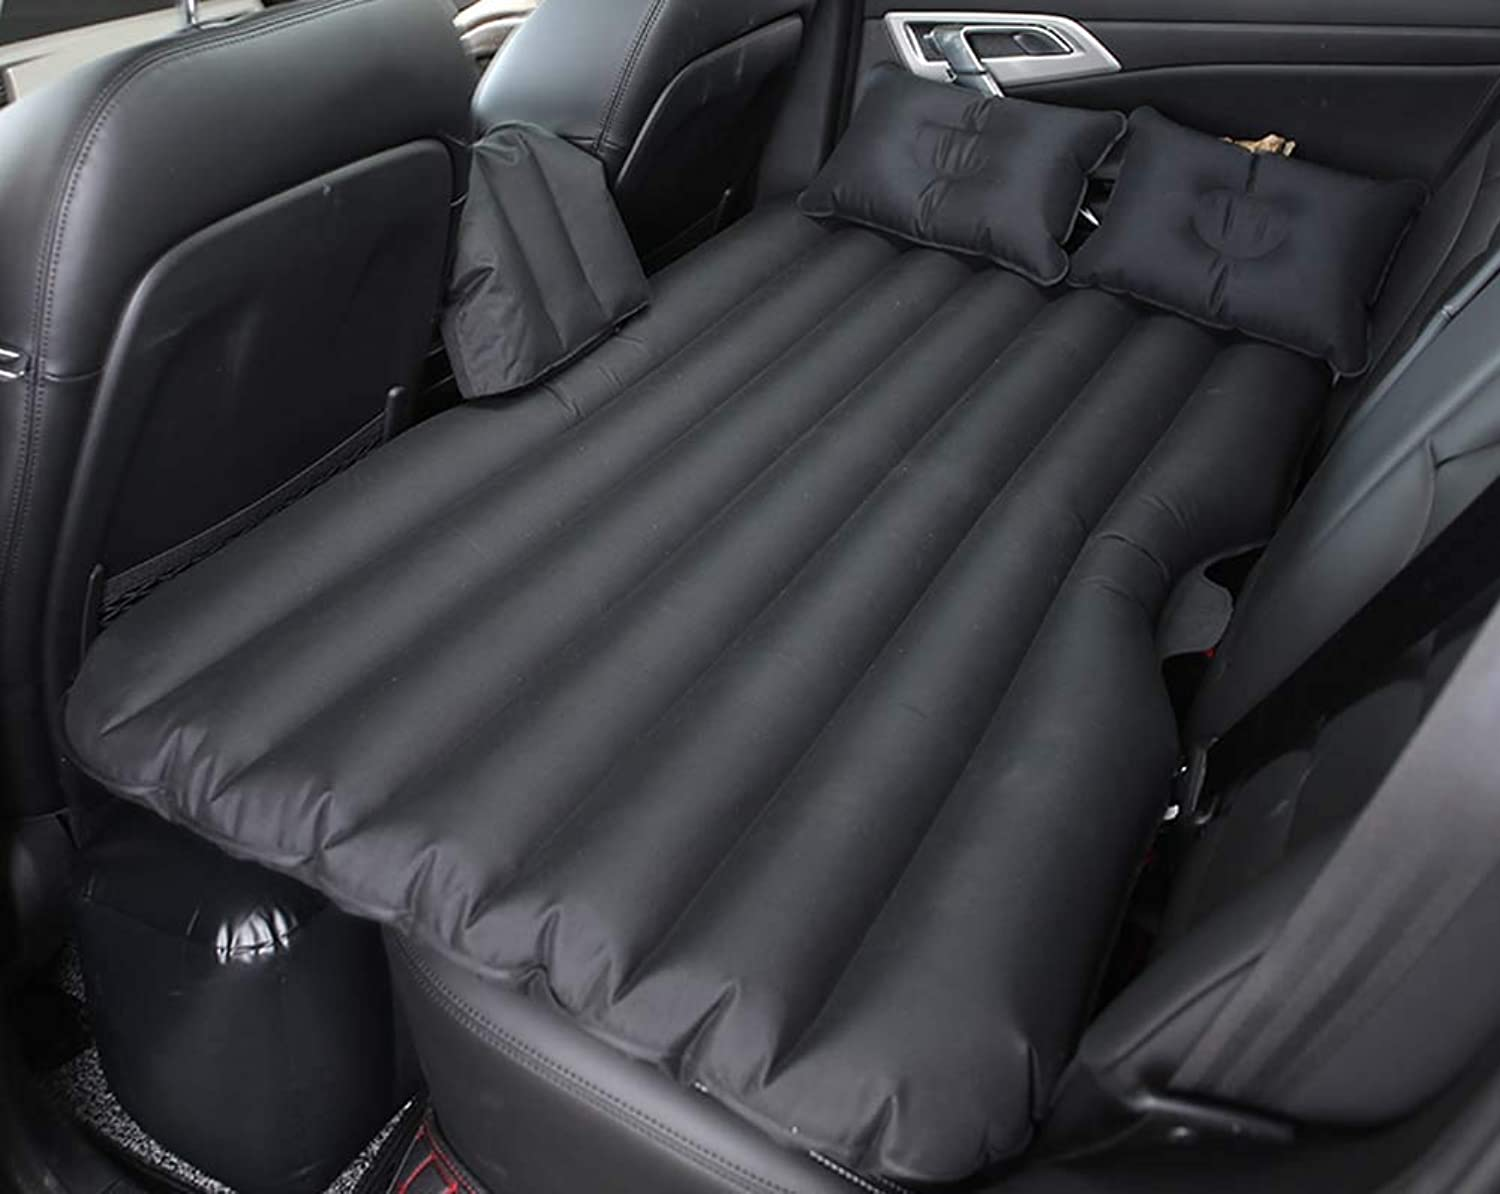 Car Inflatable Bed Back Seat Mattress, Camping Air Bed Car Mobile Cushion Inflation Back Seat Extended Couch with Motor Pump,Black,B